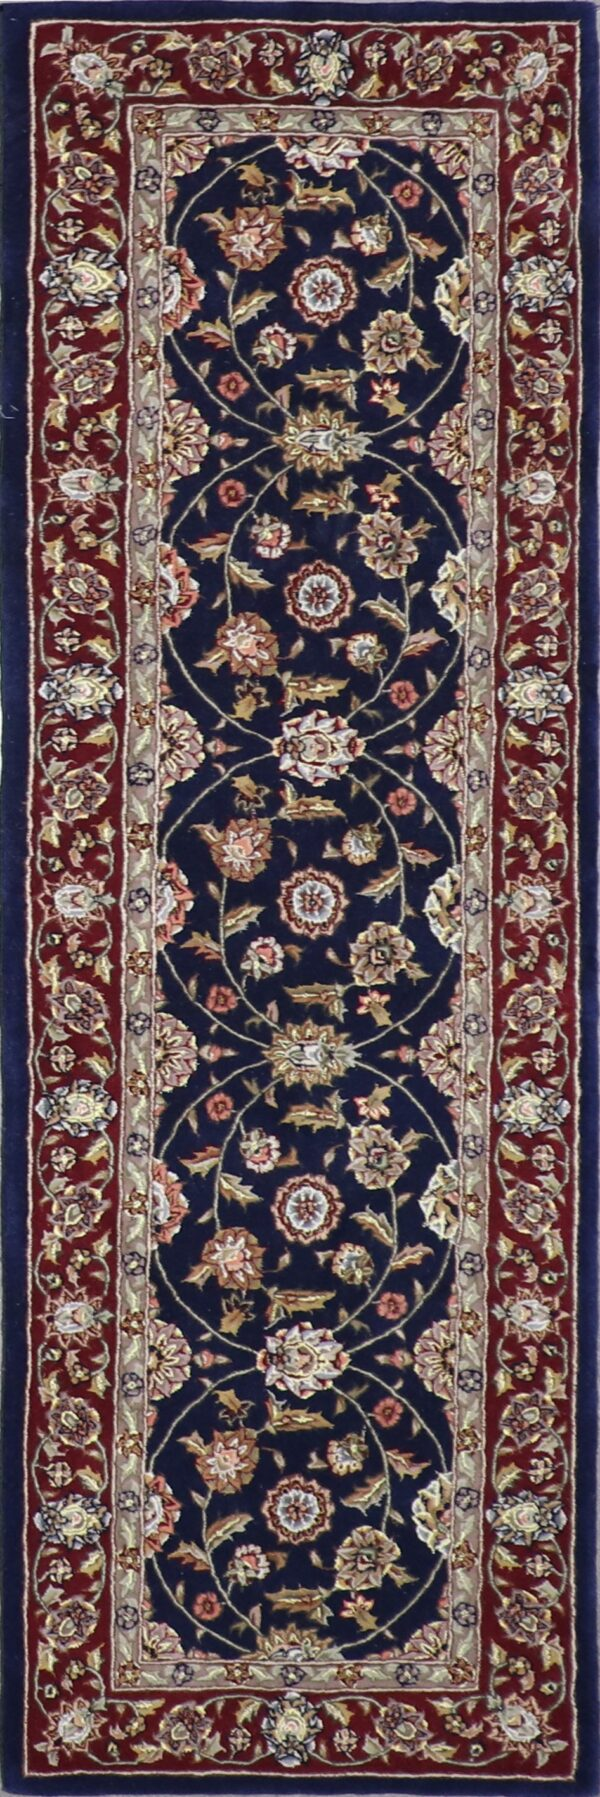 """2'5""""x8' Traditional Wool & Silk Hand-Tufted Rug - Direct Rug Import 